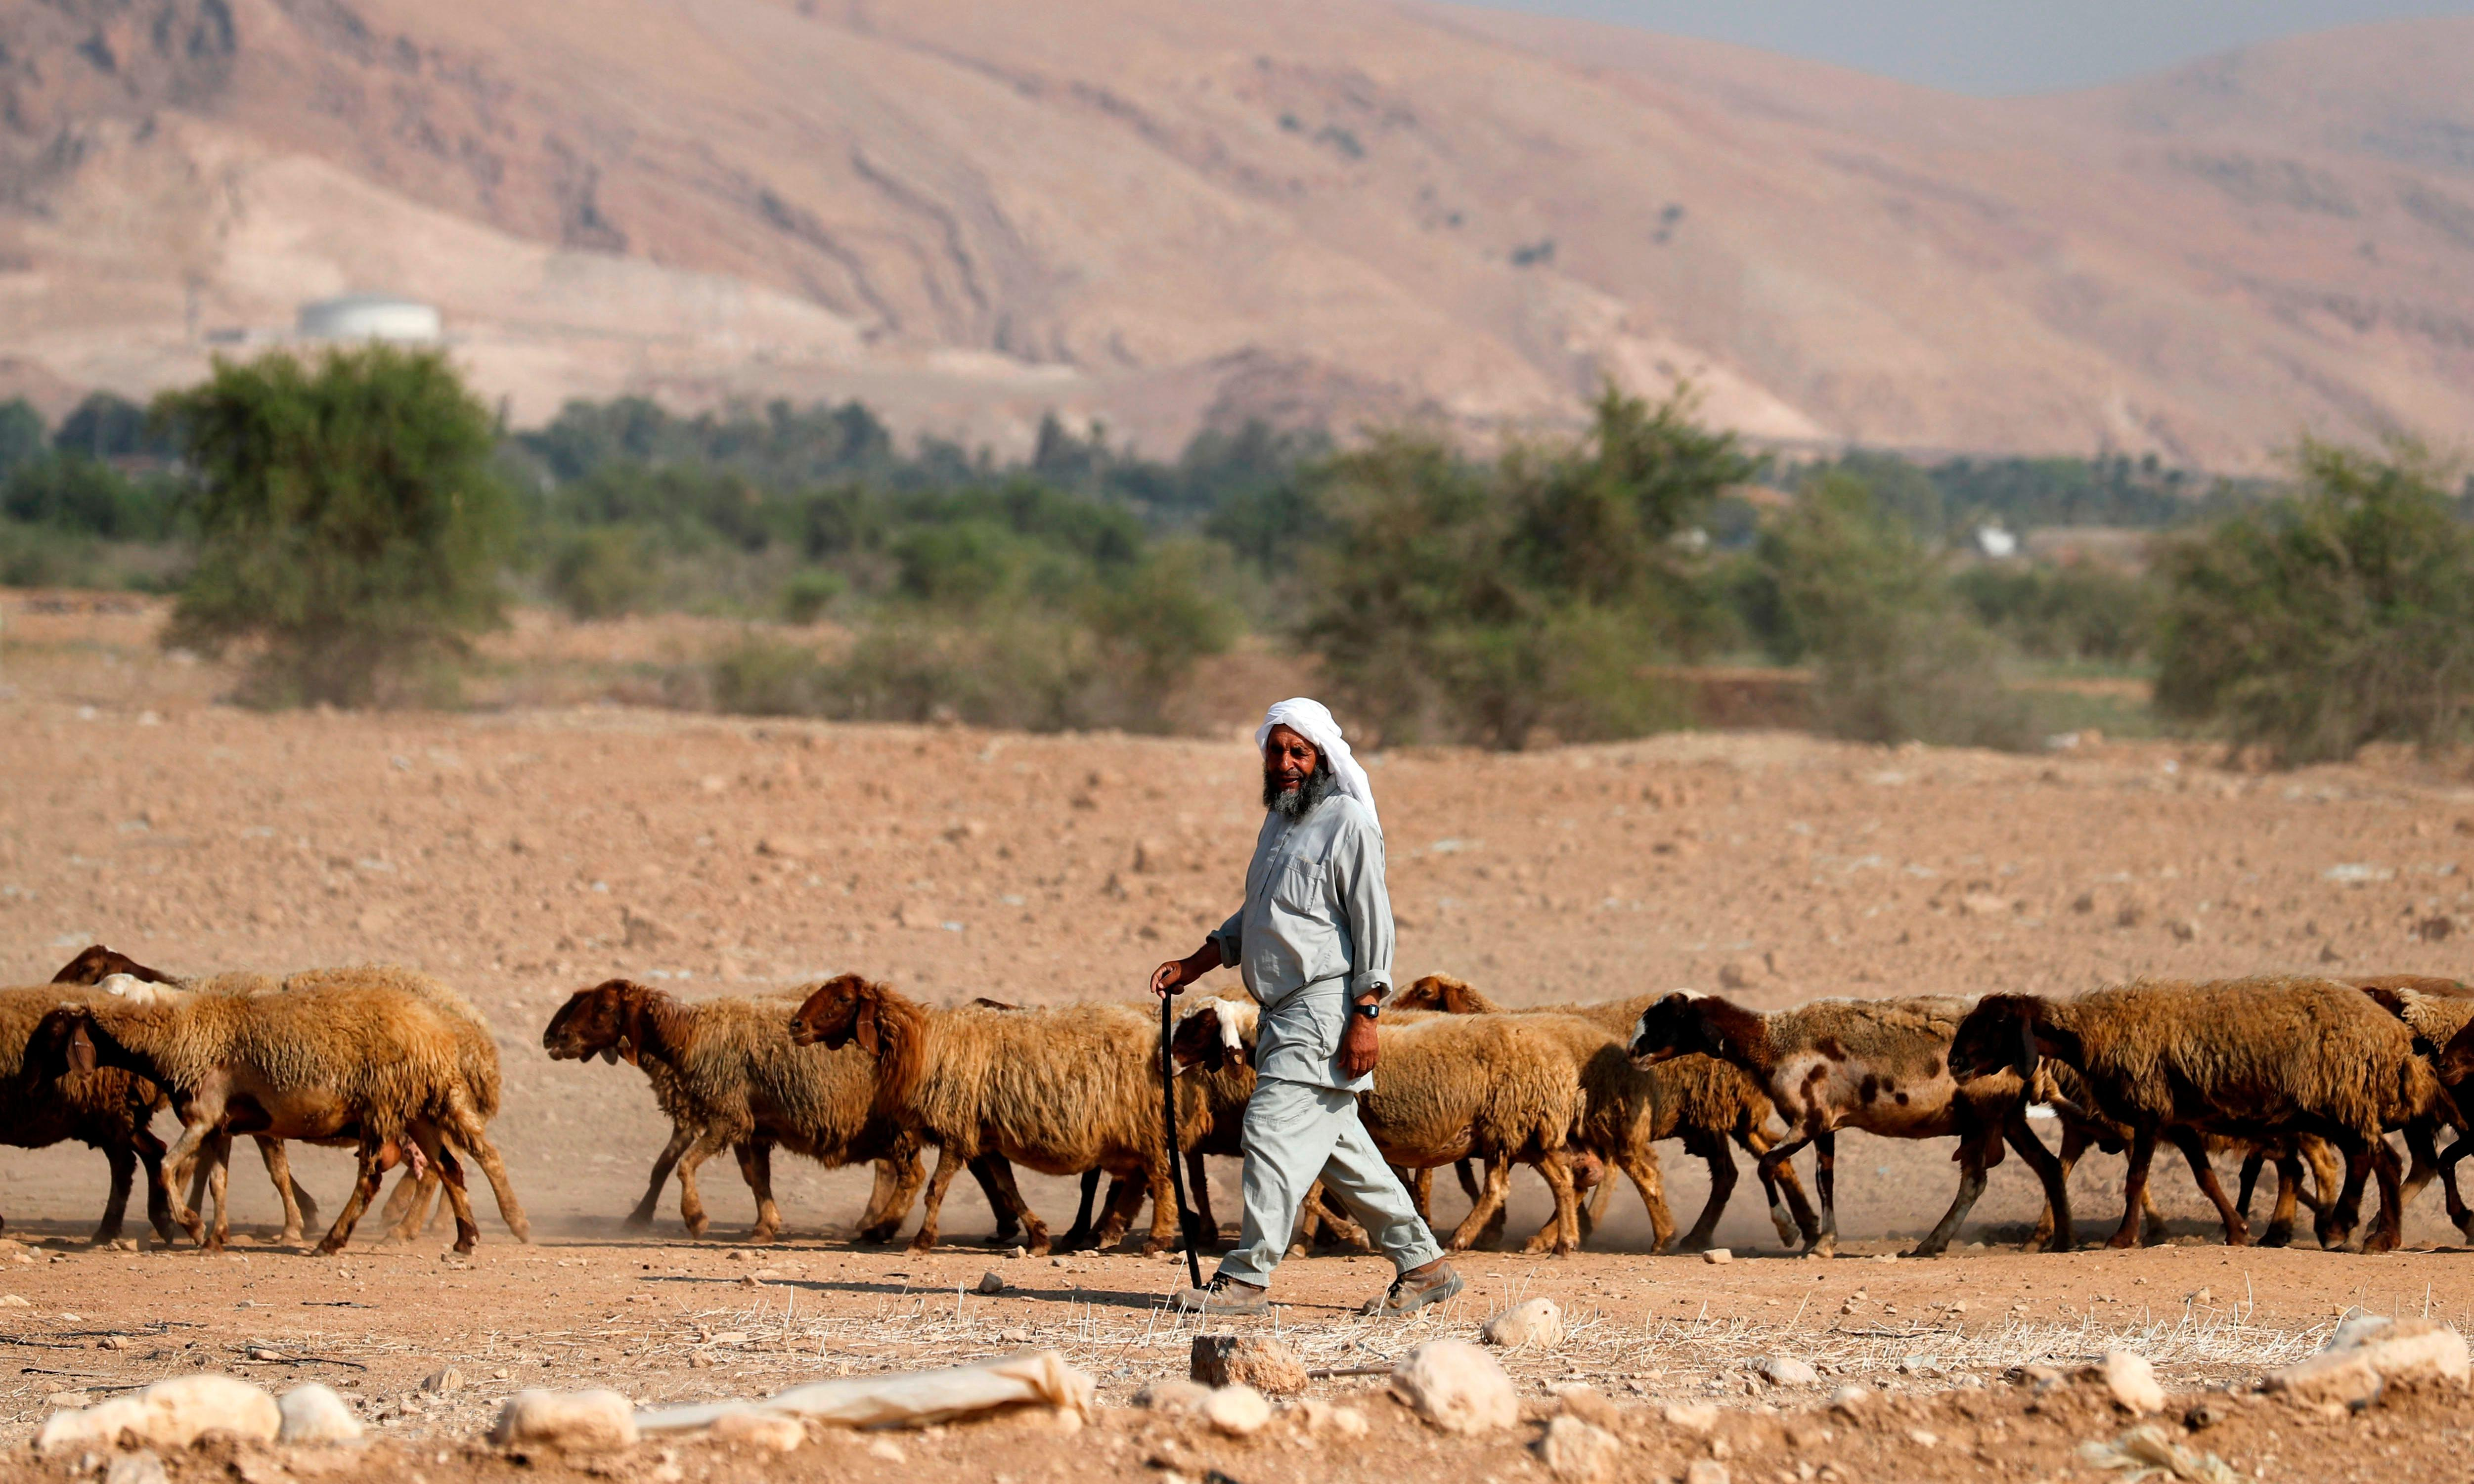 The Guardian view on Netanyahu's land grab: a prison, not a peace